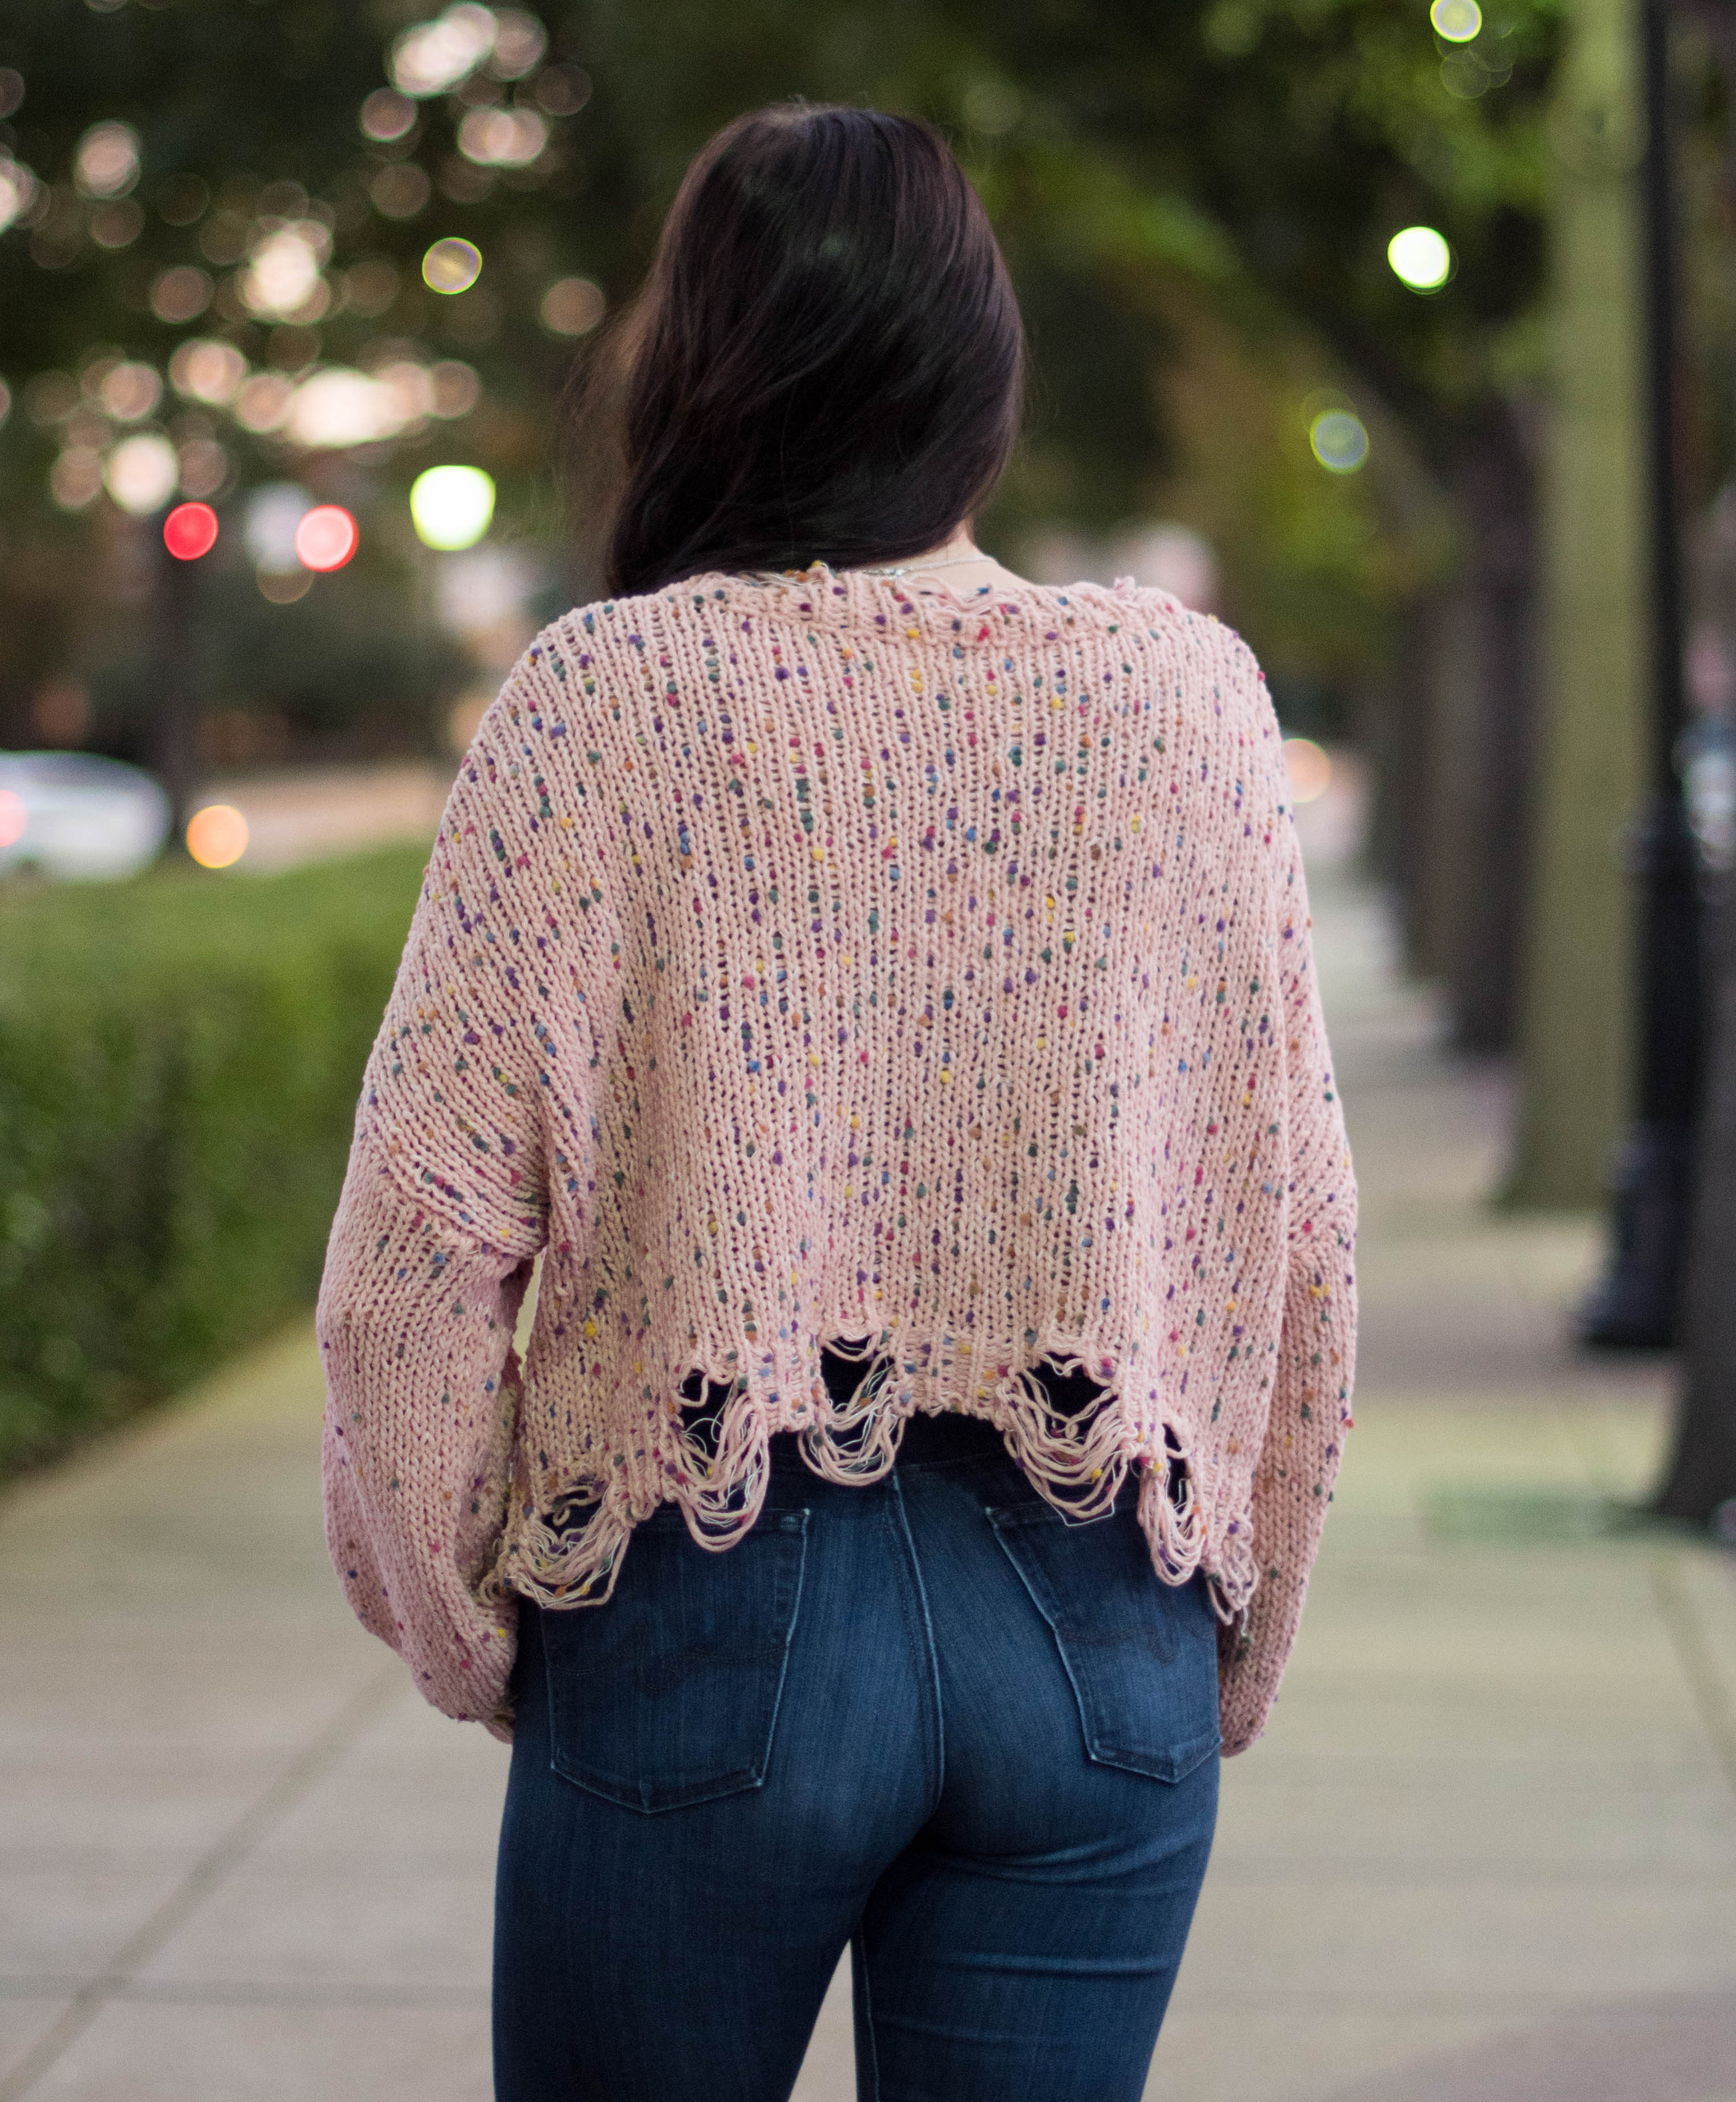 Lexington Sweater | Fall Fashion | Bailey Nicole